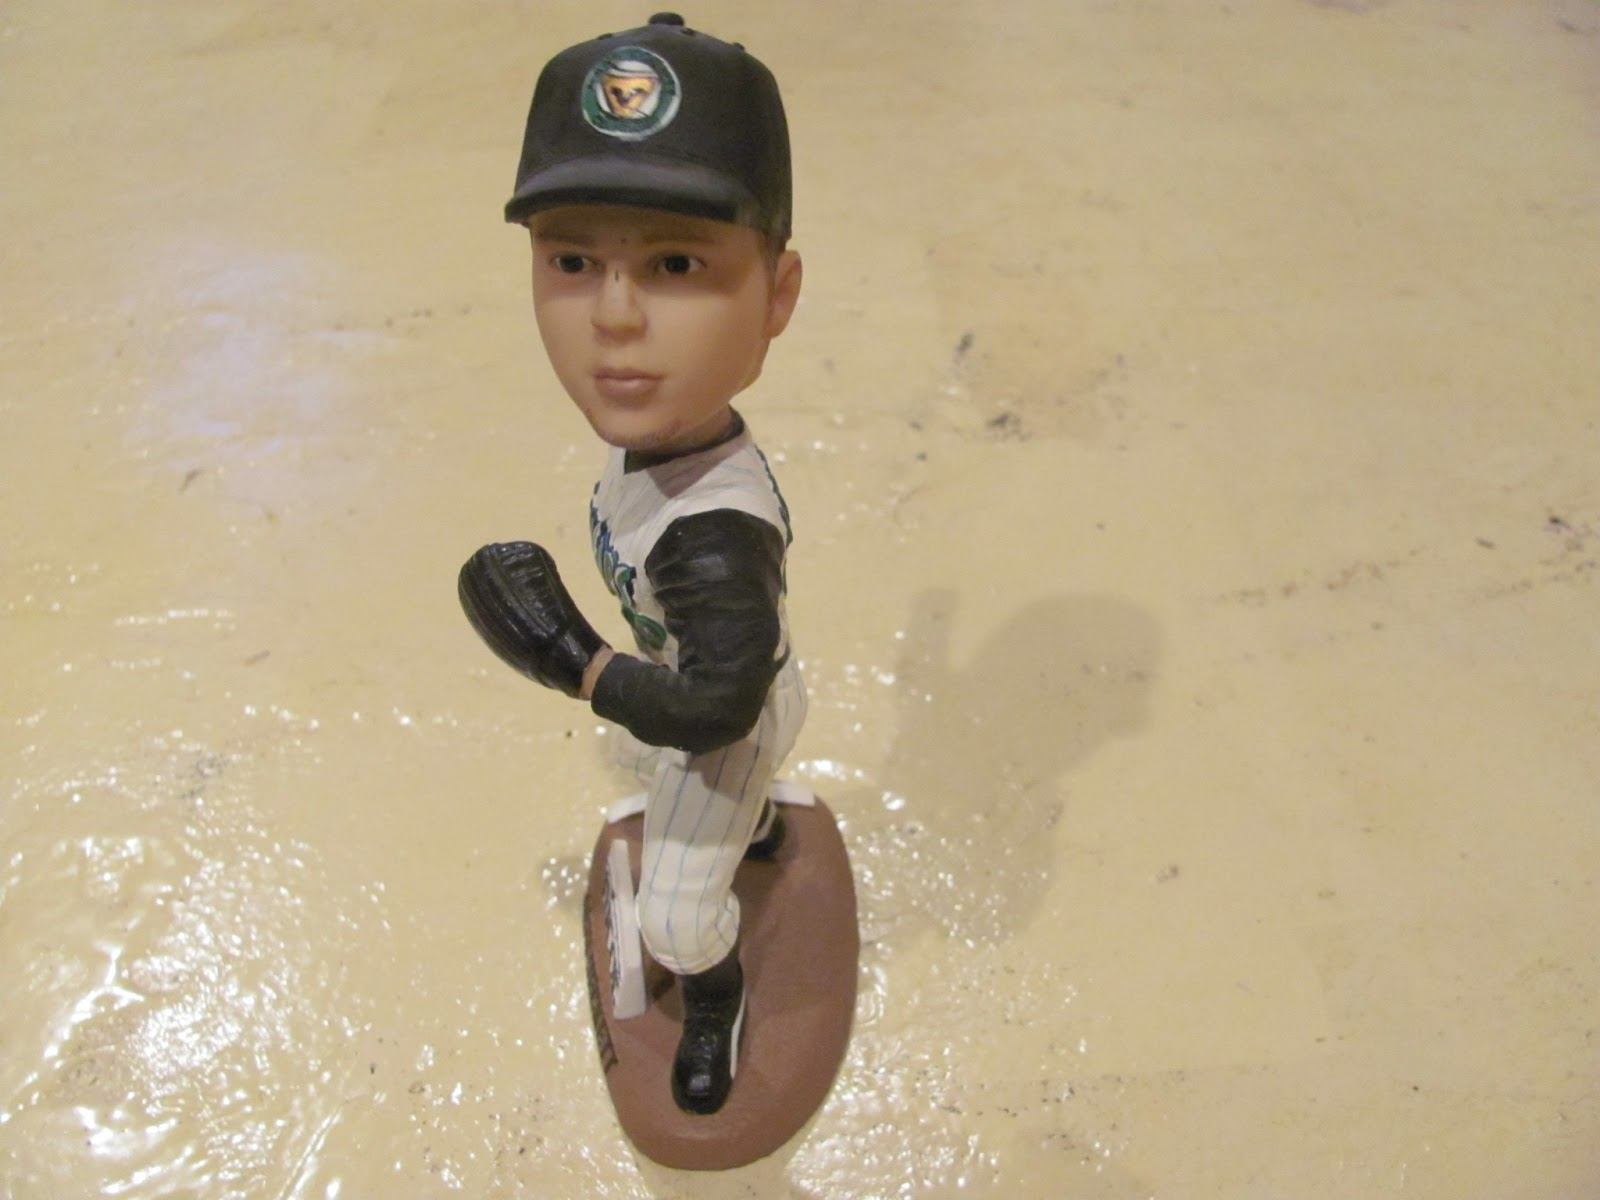 Josh Beckett bobblehead on display before going up for sale